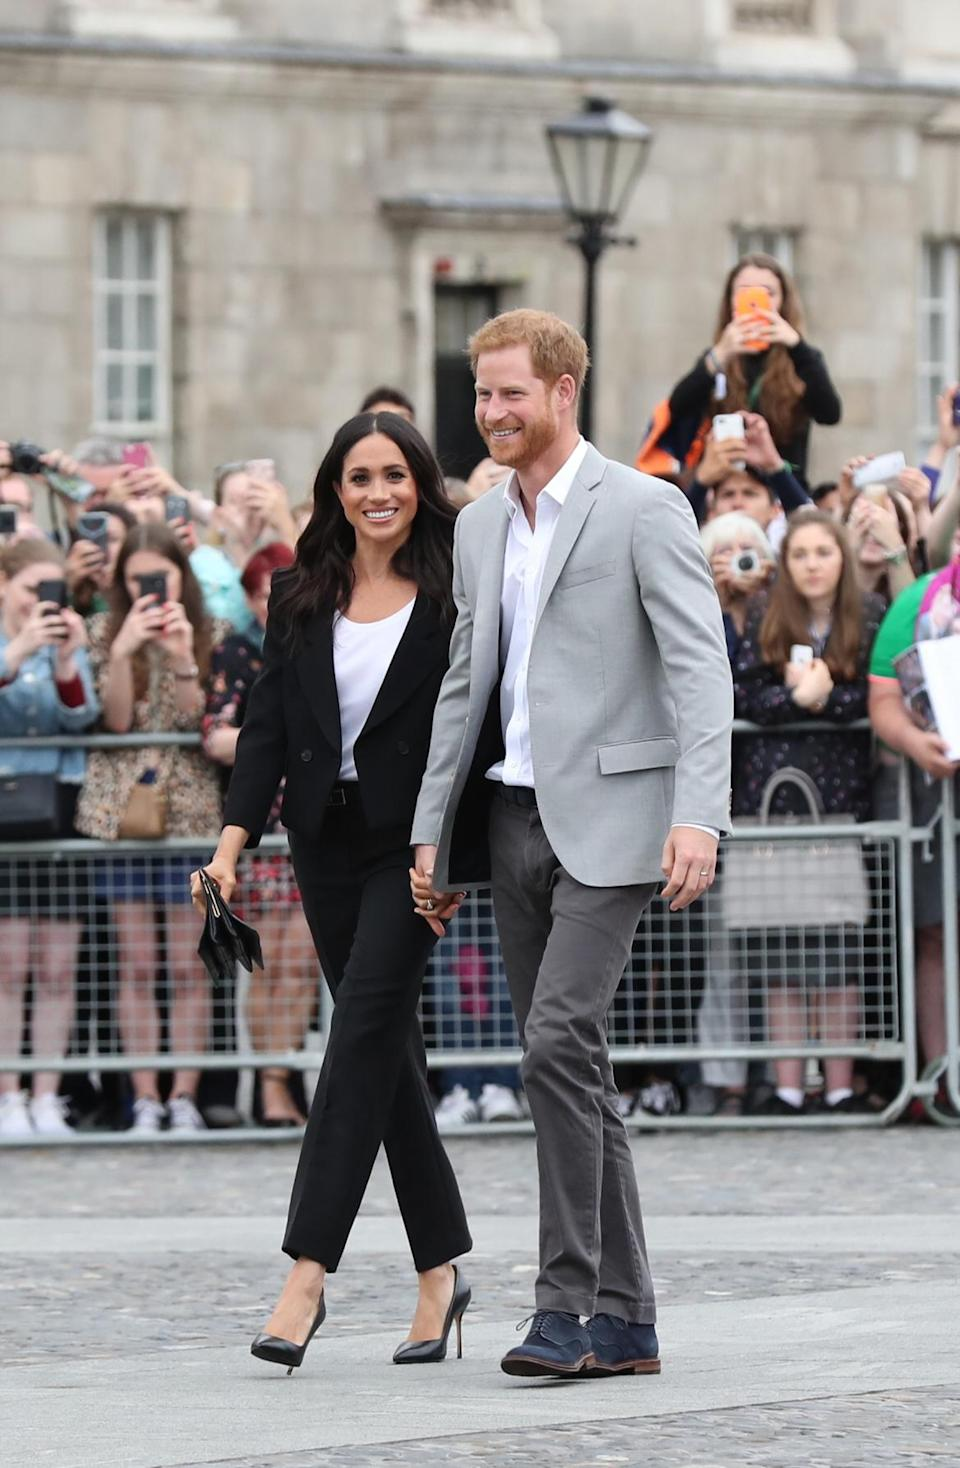 The Duchess of Sussex later changed into a slick two-piece suit by Givenchy and Sarah Flint heels [Photo: PA]